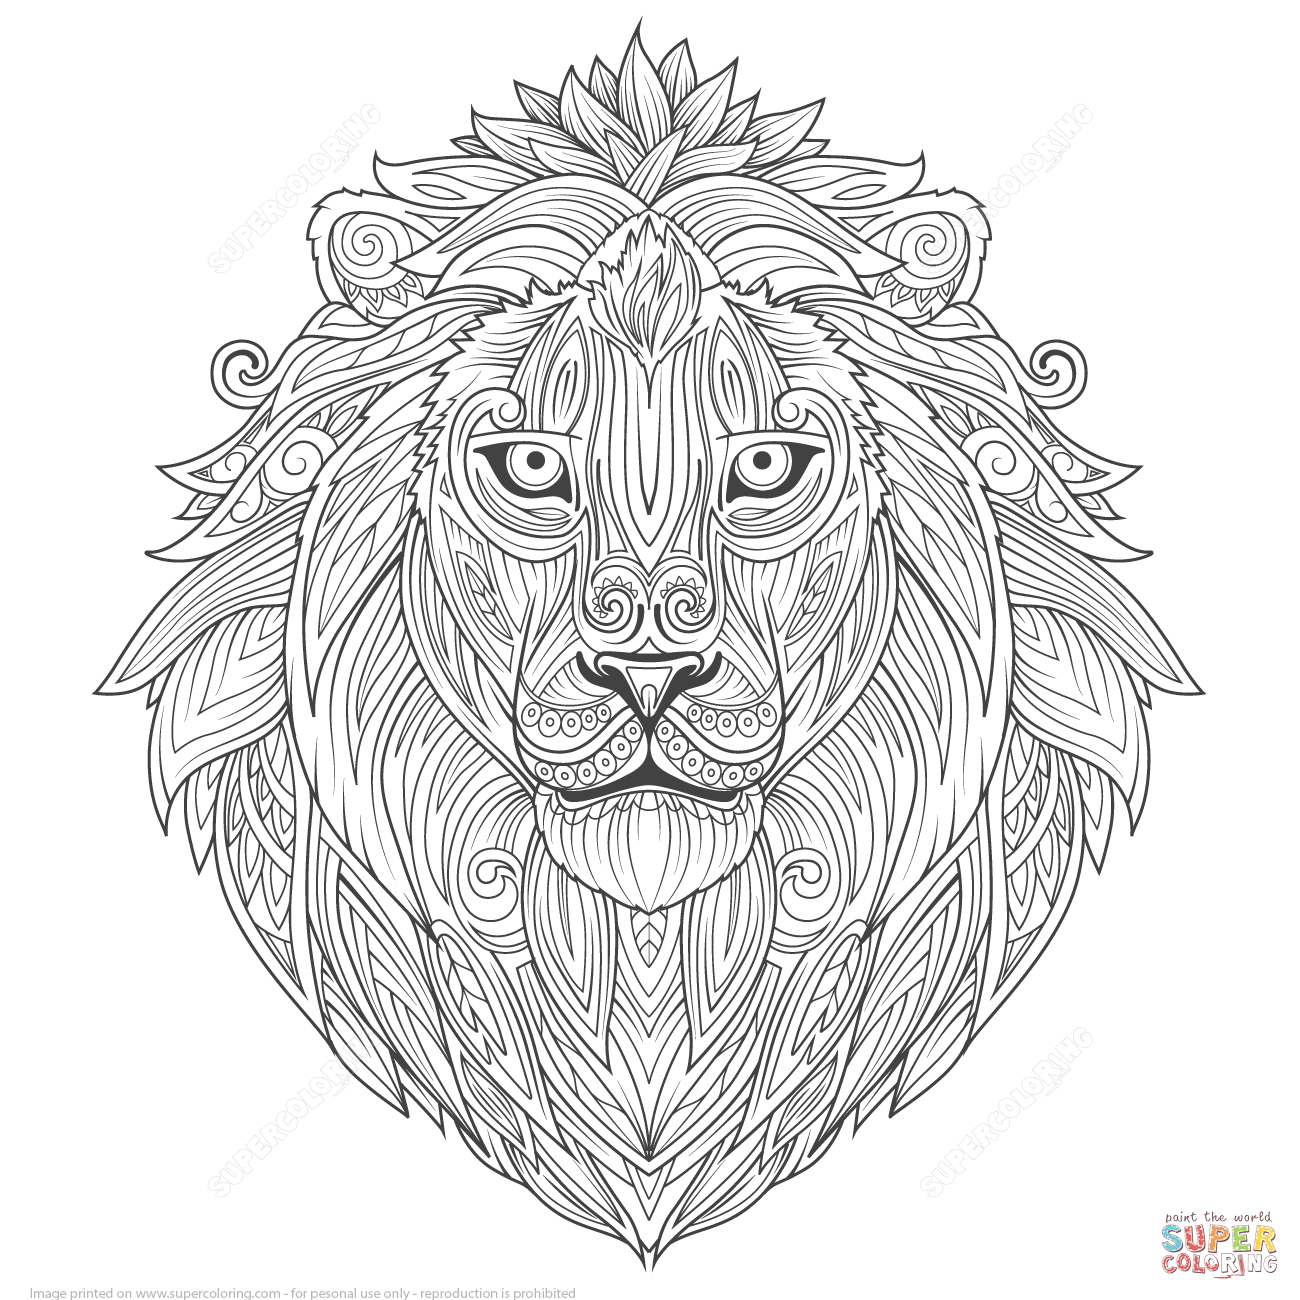 1300x1300 Free Zentangle Coloring Pages Zentangle Coloring Pages Freecrystle